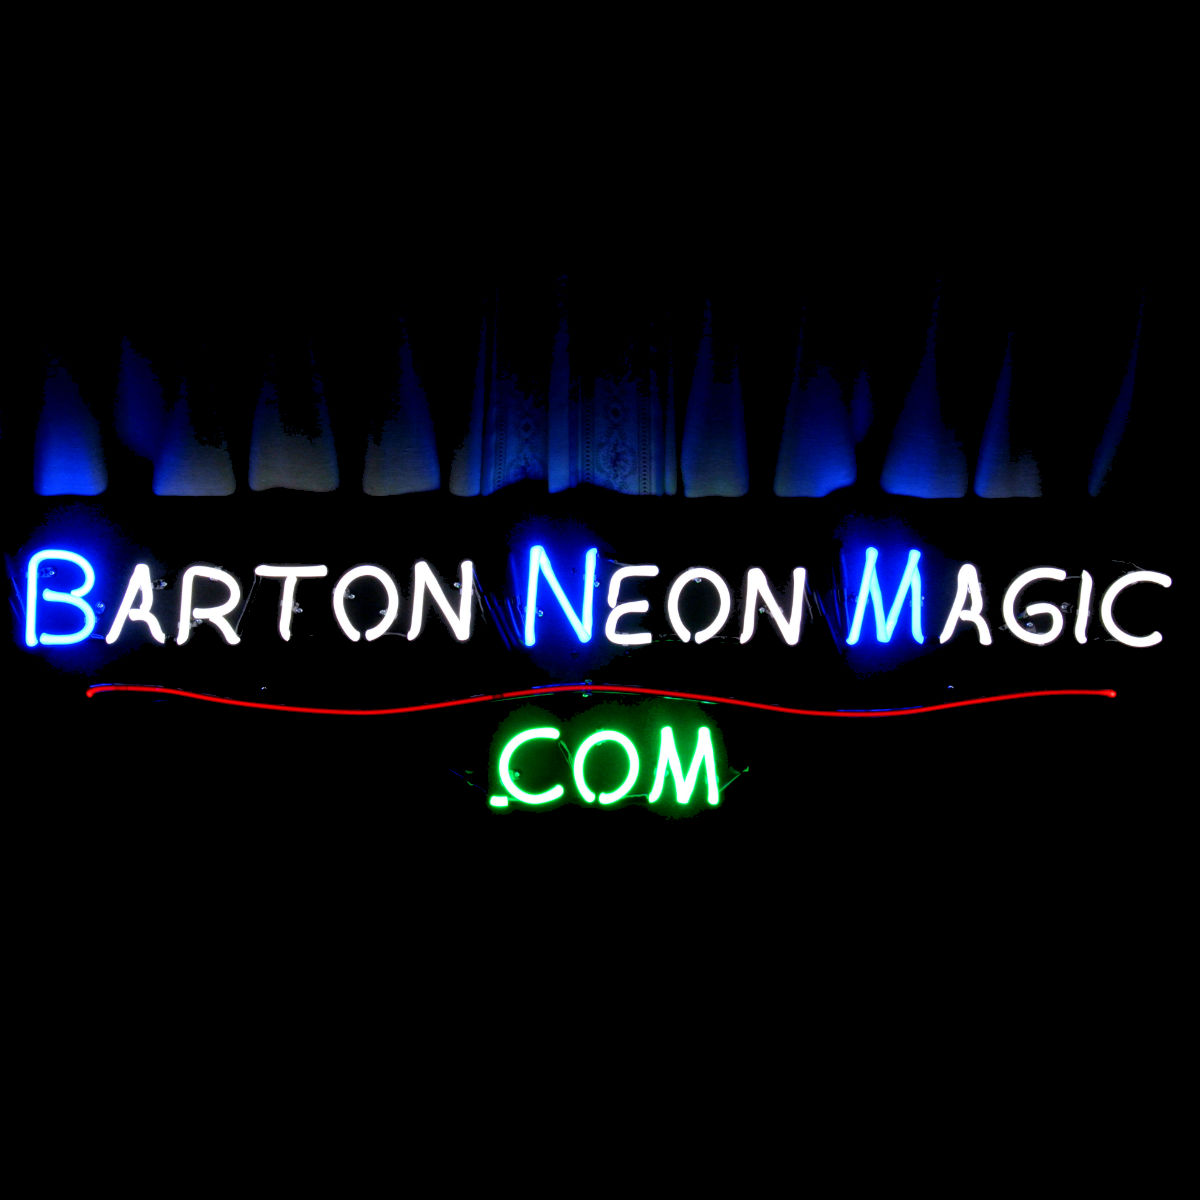 CAT NEON LIGHT ARTWORKS by John Barton - BartonNeonMagic.com